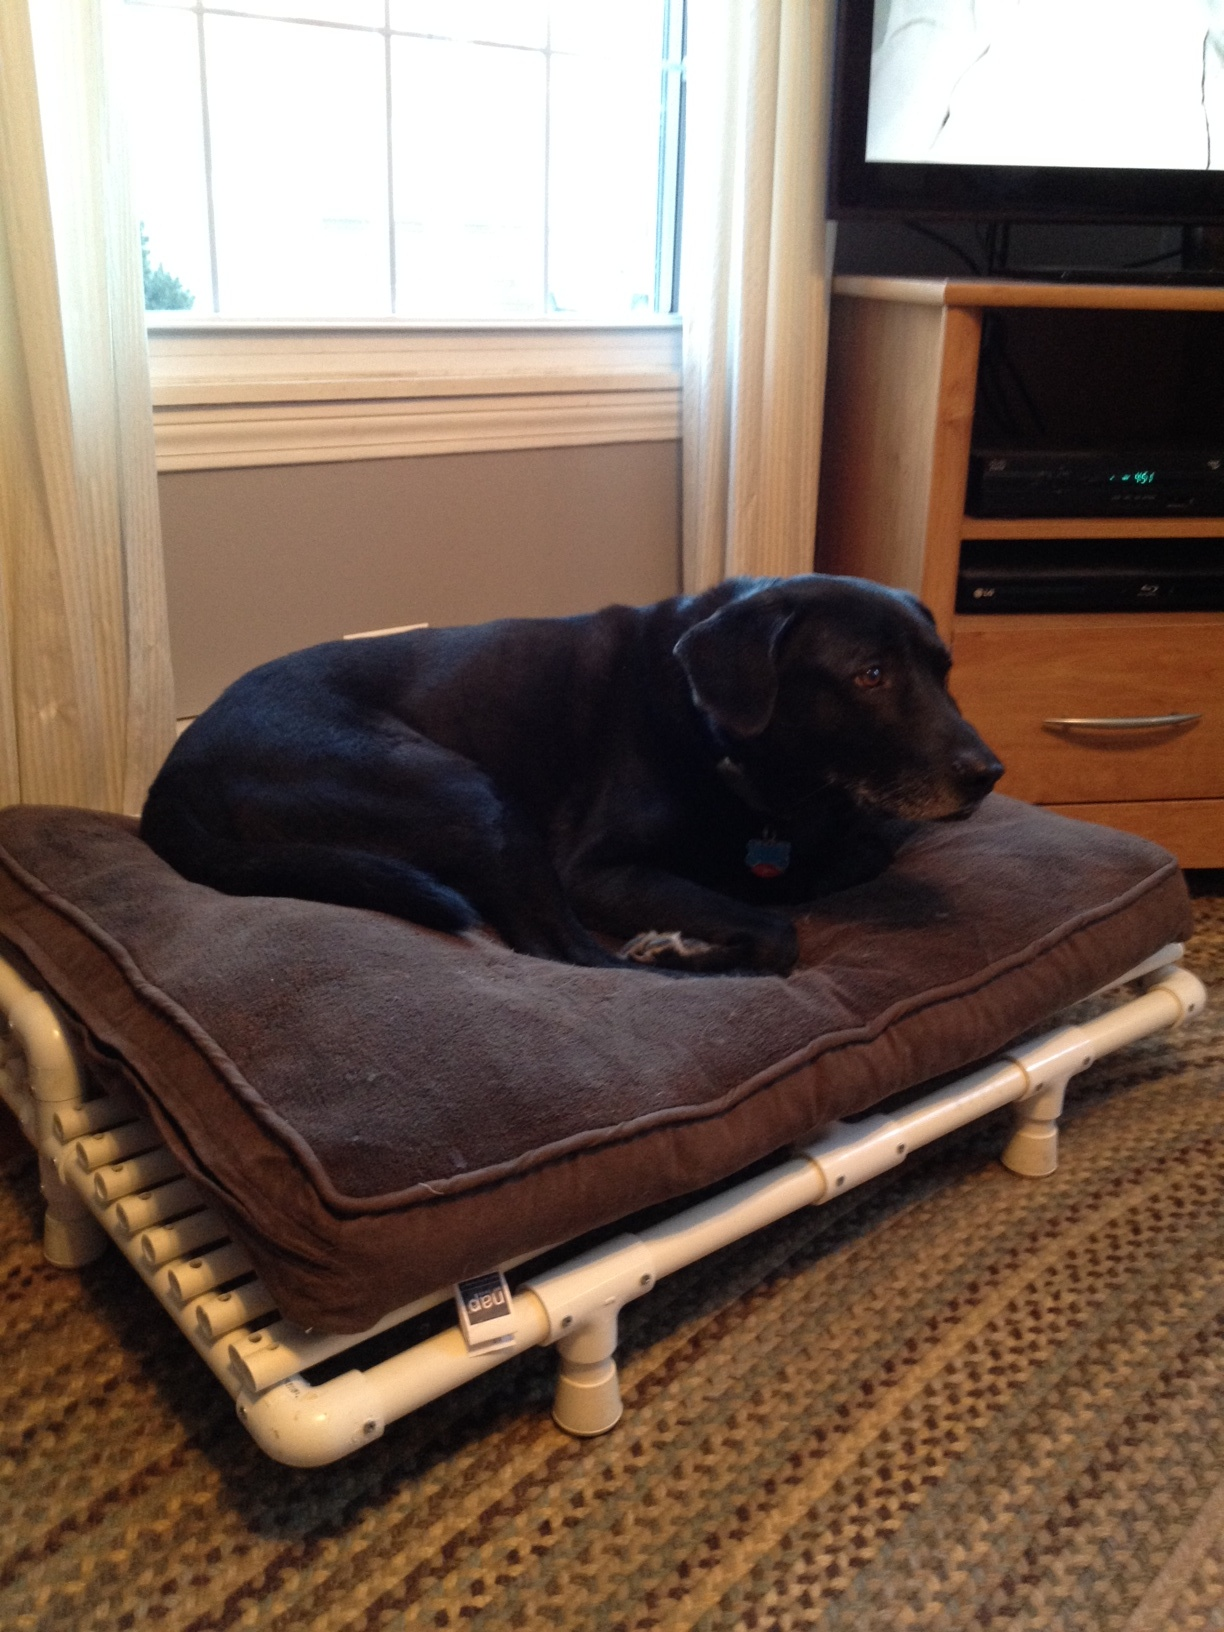 Pictures of a build it yourself pvc raised dog bed for Build a dog bed